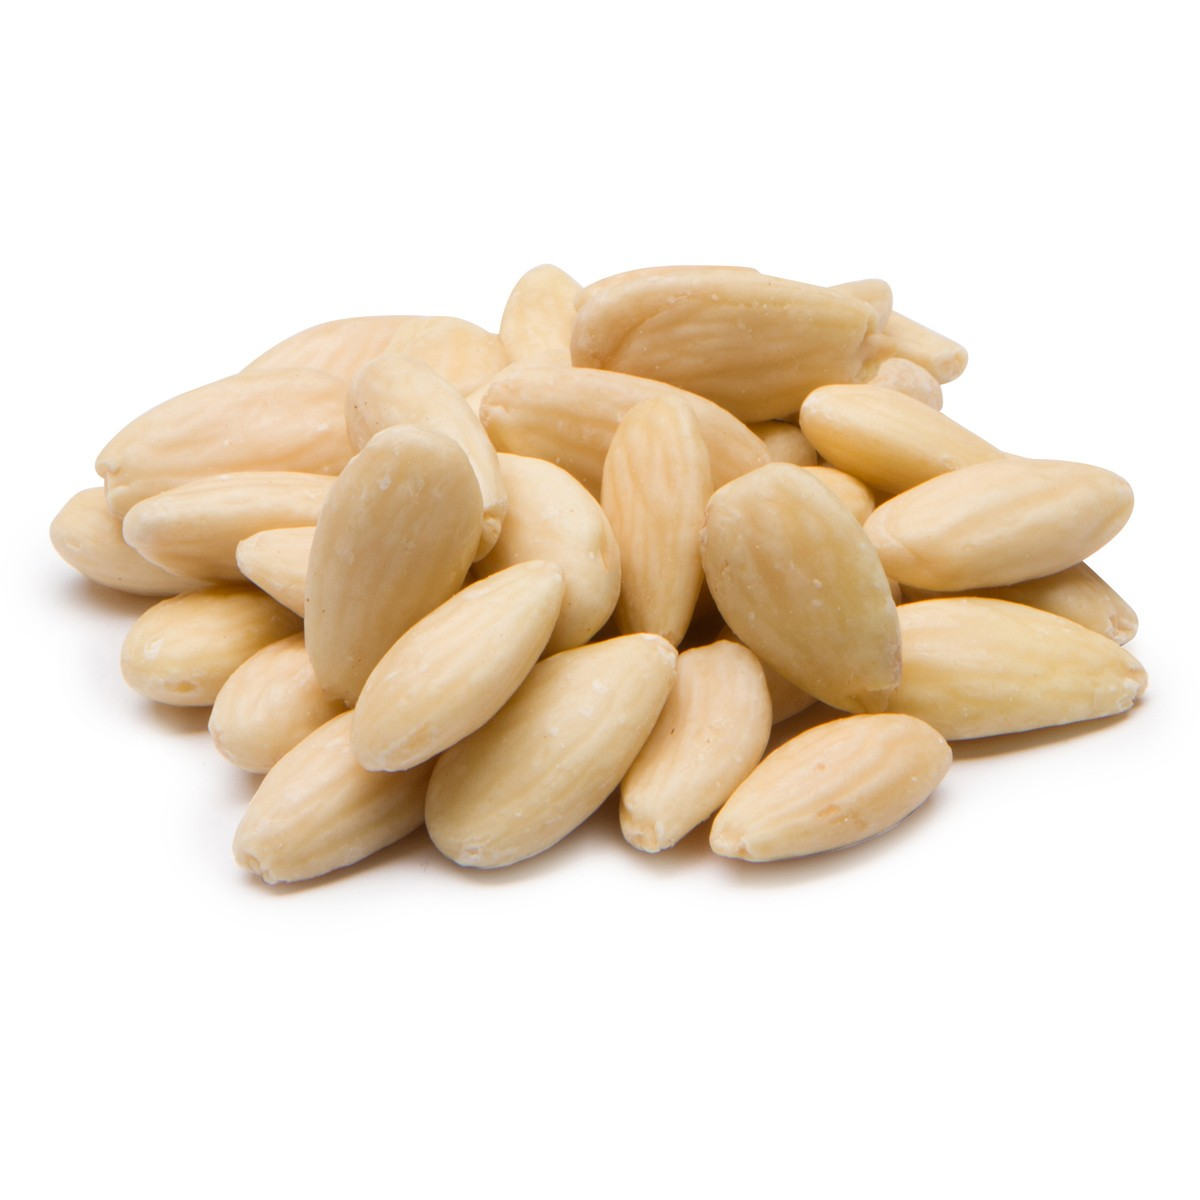 Image result for blanched almonds